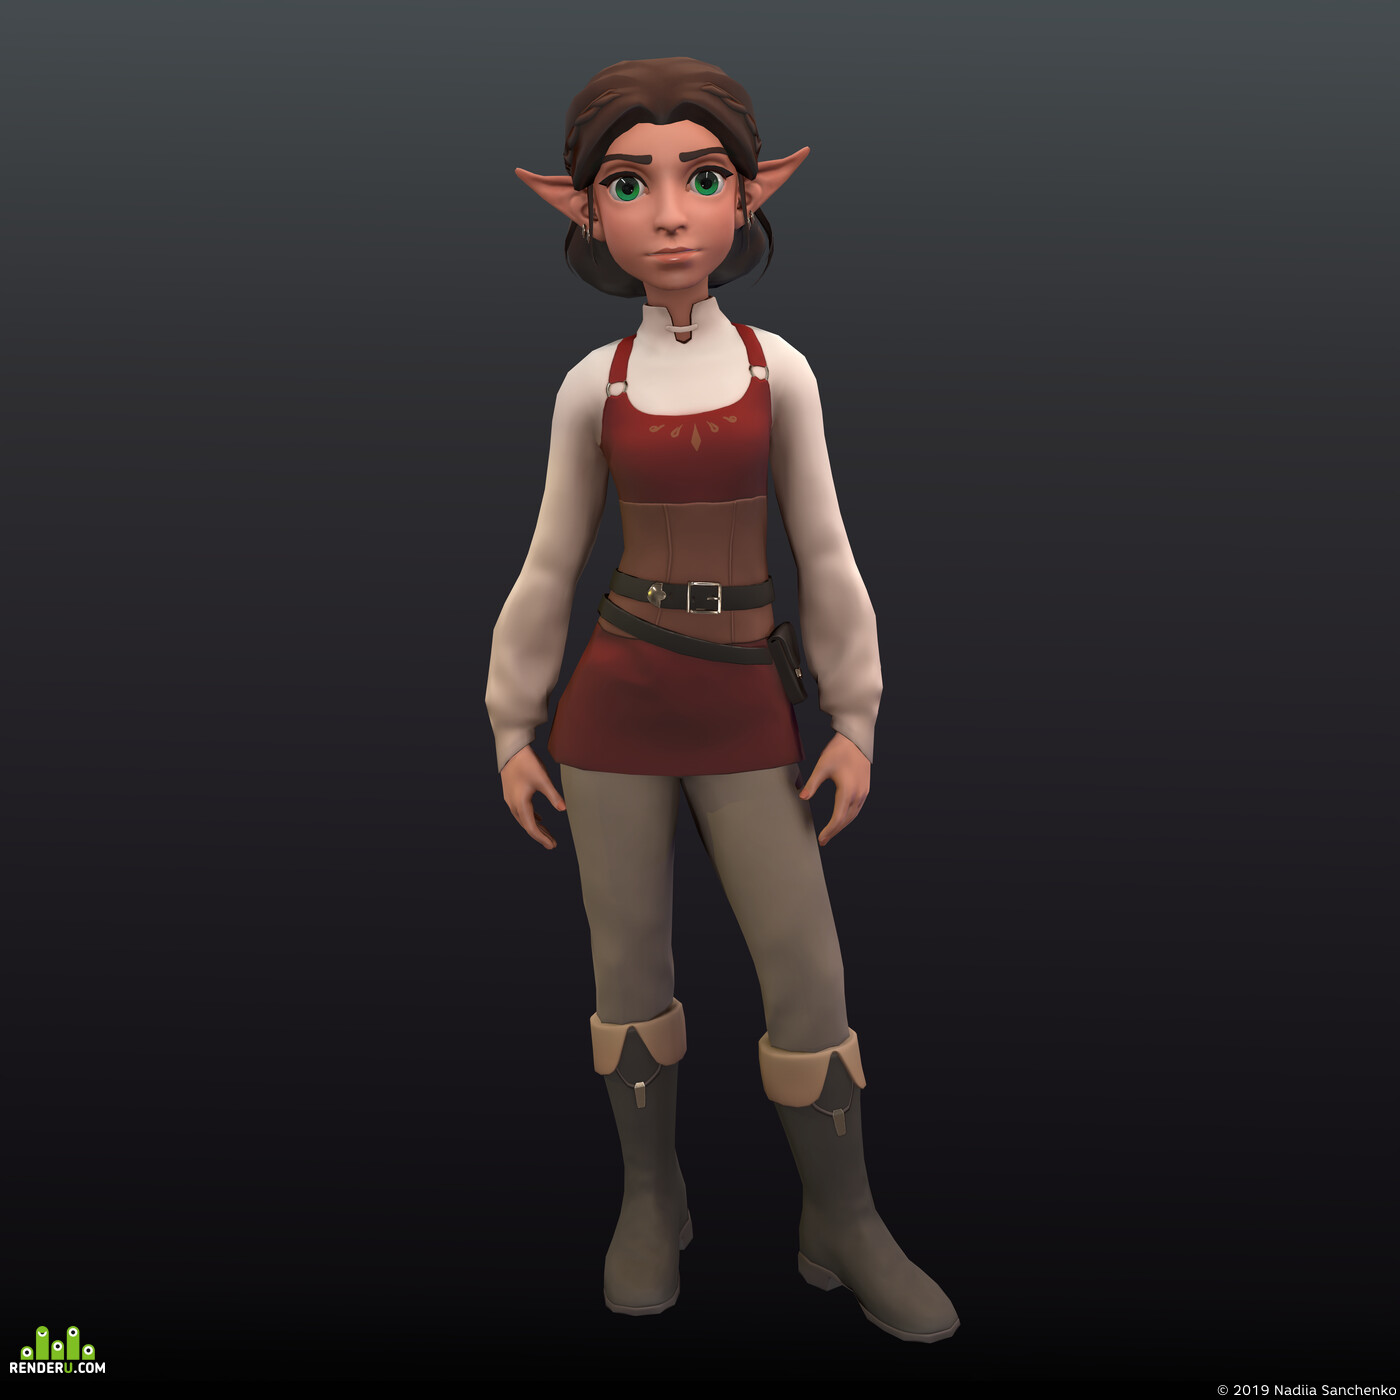 Fantasy, 3d, lowpoly, sculpting, mobilegame, stylized, elf, 3d character, cartooncharacter